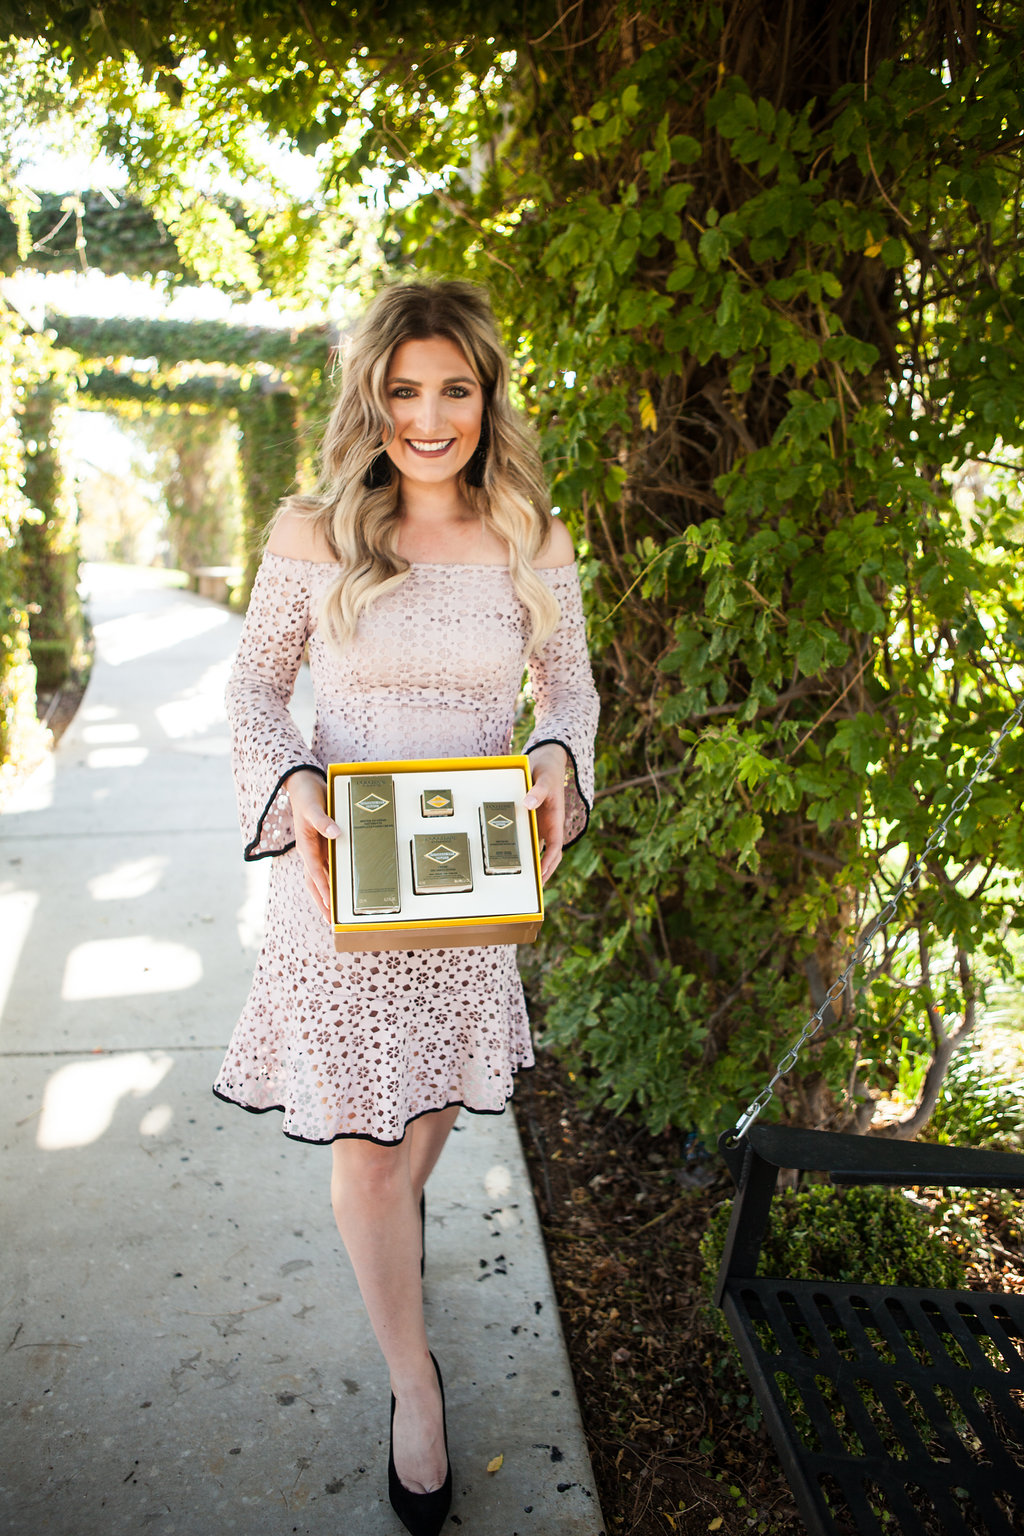 L'Occitan Holiday Gifts for the girl | Luxurious skincare | Audrey Madison Stowe a fashion and lifestyle college blogger - L'Occitane Gift Set featured by popular Texas style blogger, Audrey Madison Stowe